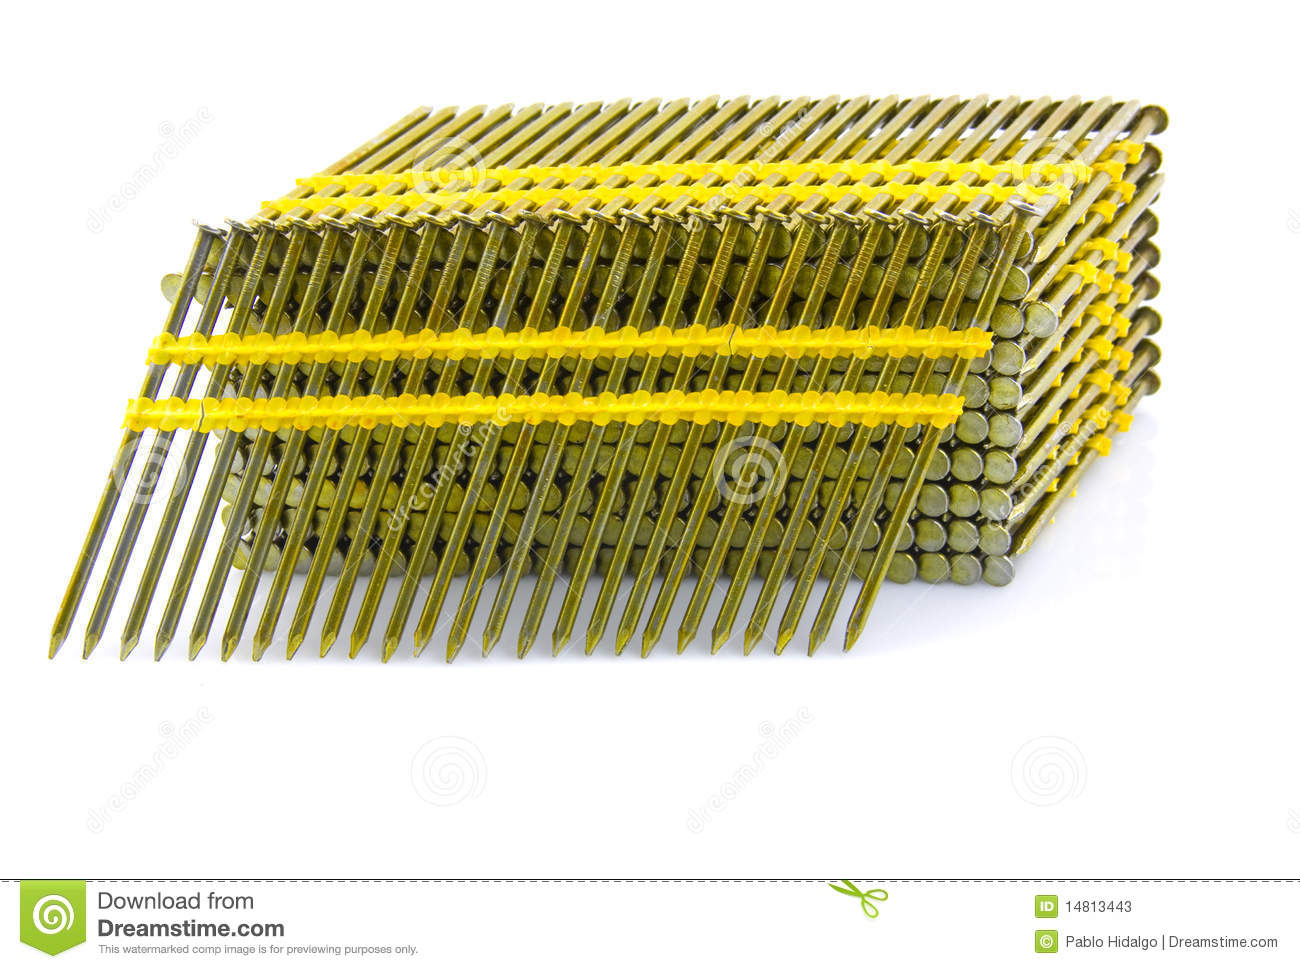 Round Head Plastic Collated Framing Nails Stock Image - Image of ...